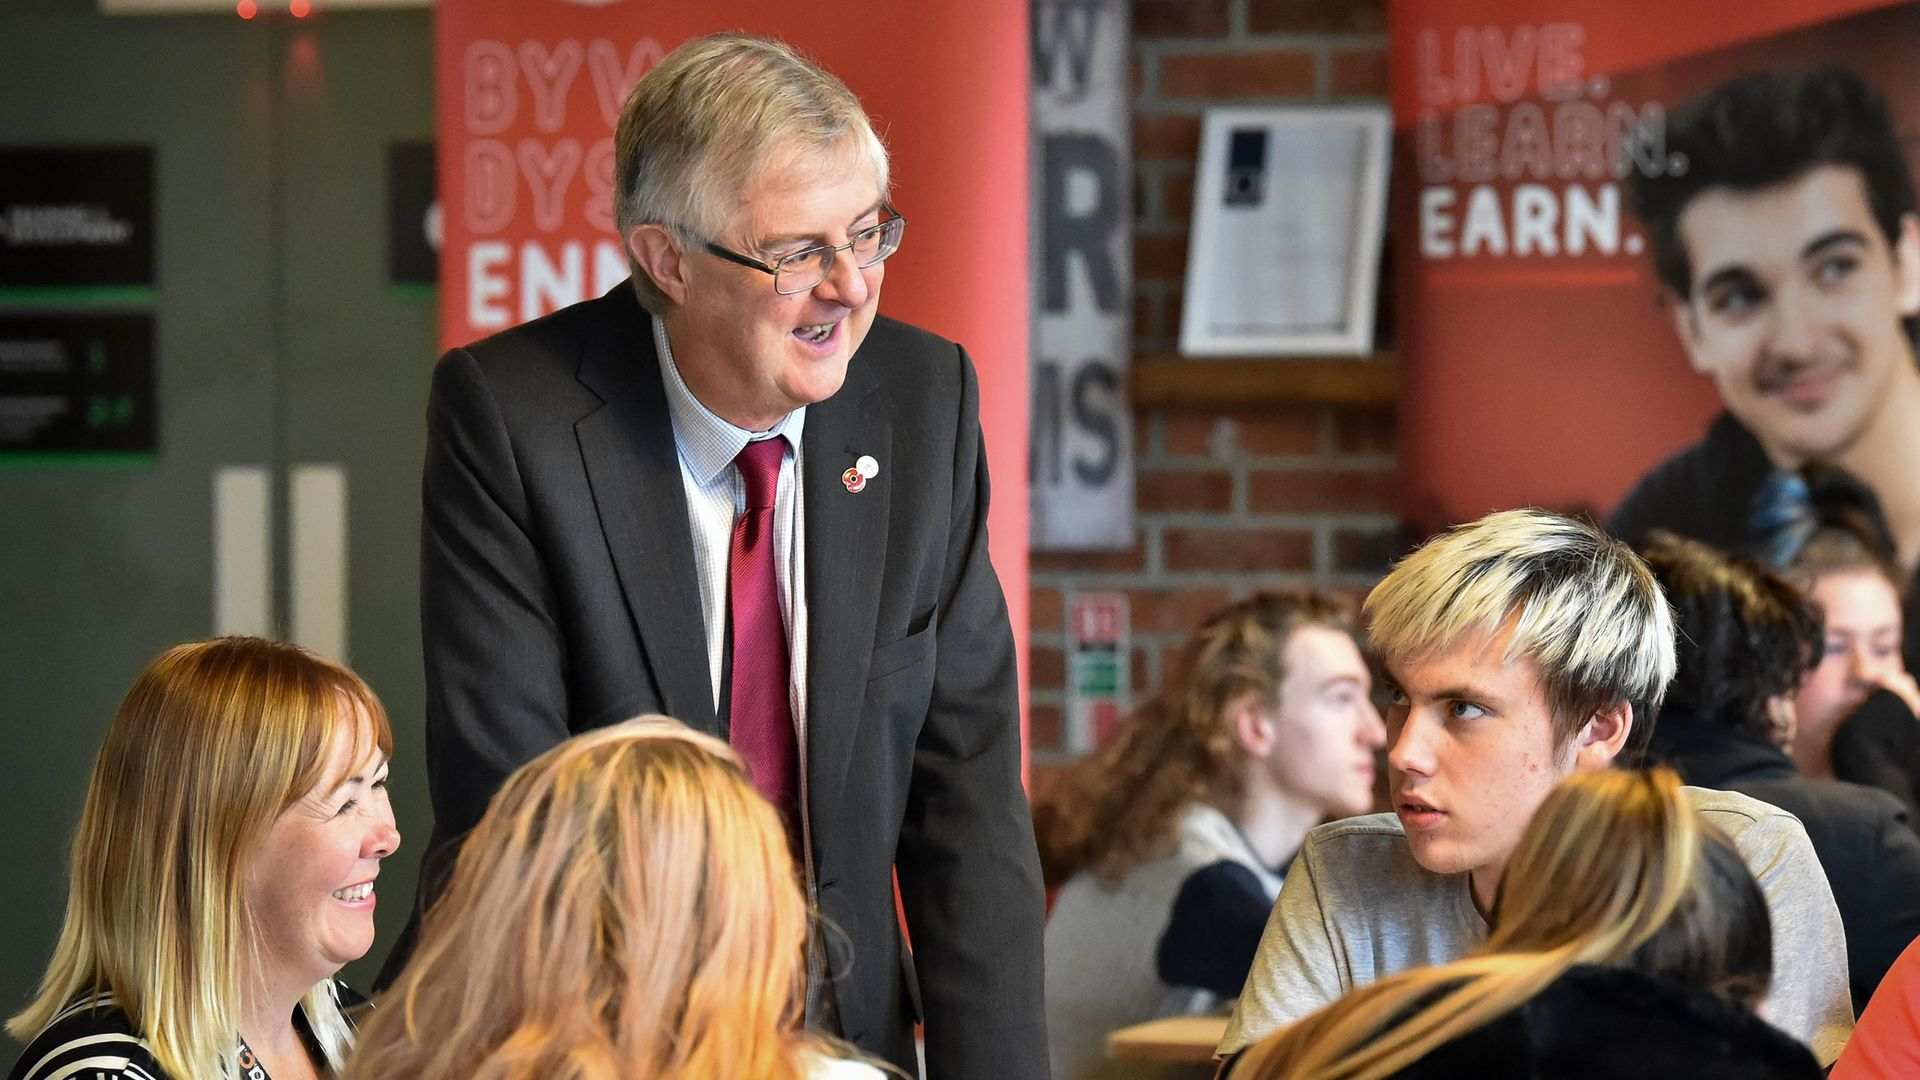 Wales' first minister Mark Drakeford chats with students at the ACT Training Centre - Credit: PA